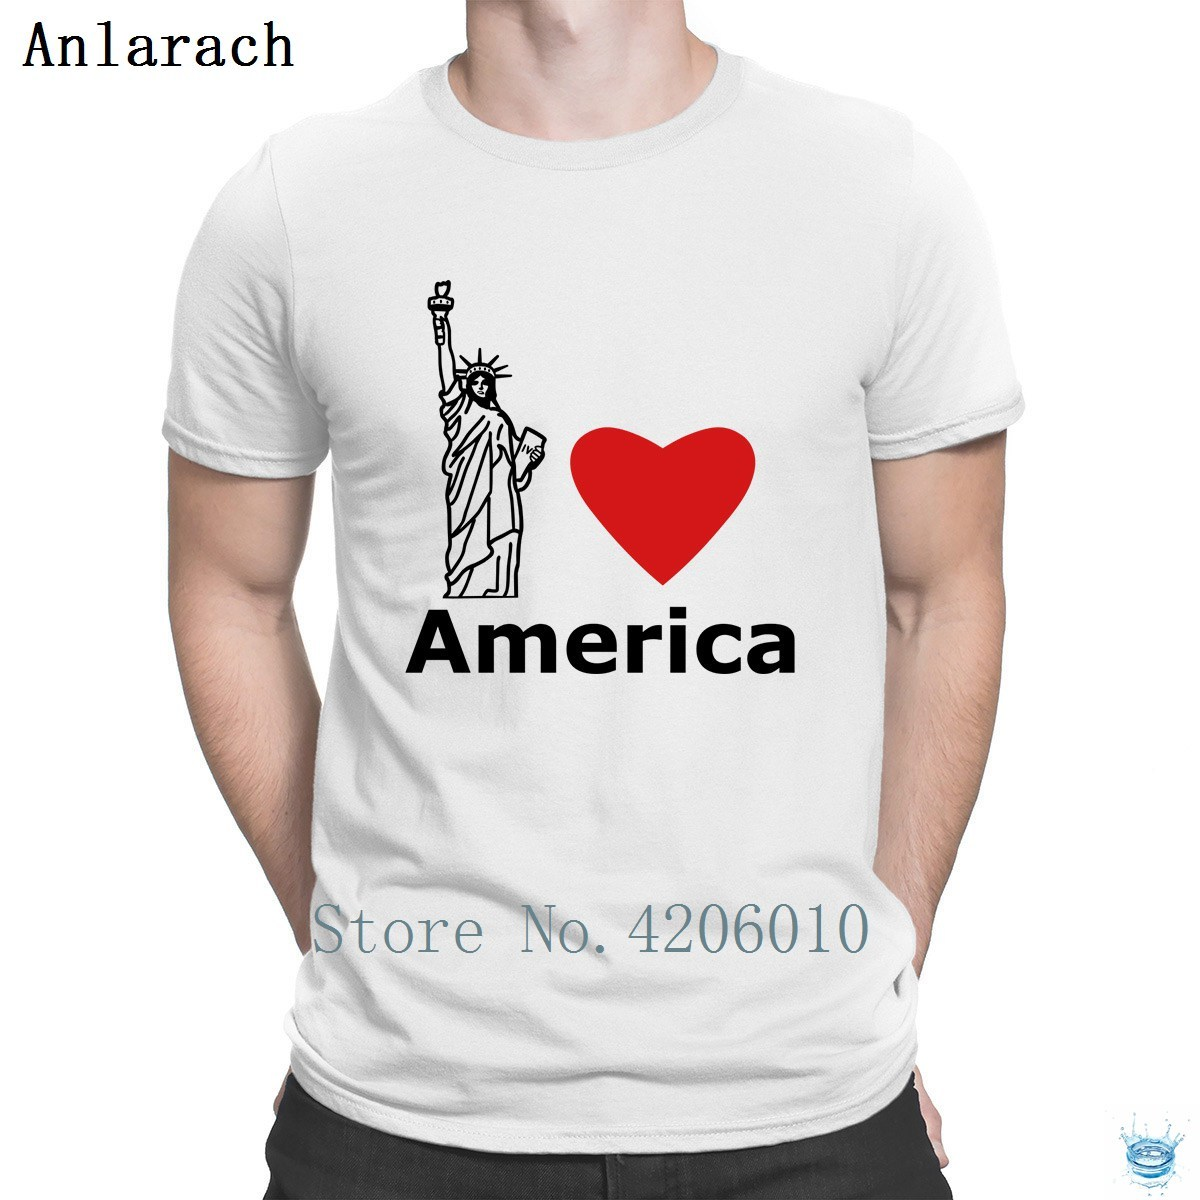 I Love America T-Shirt Family Famous O Neck Websites Tshirt For Men Personalized Top Quality Great Anlarach Summer